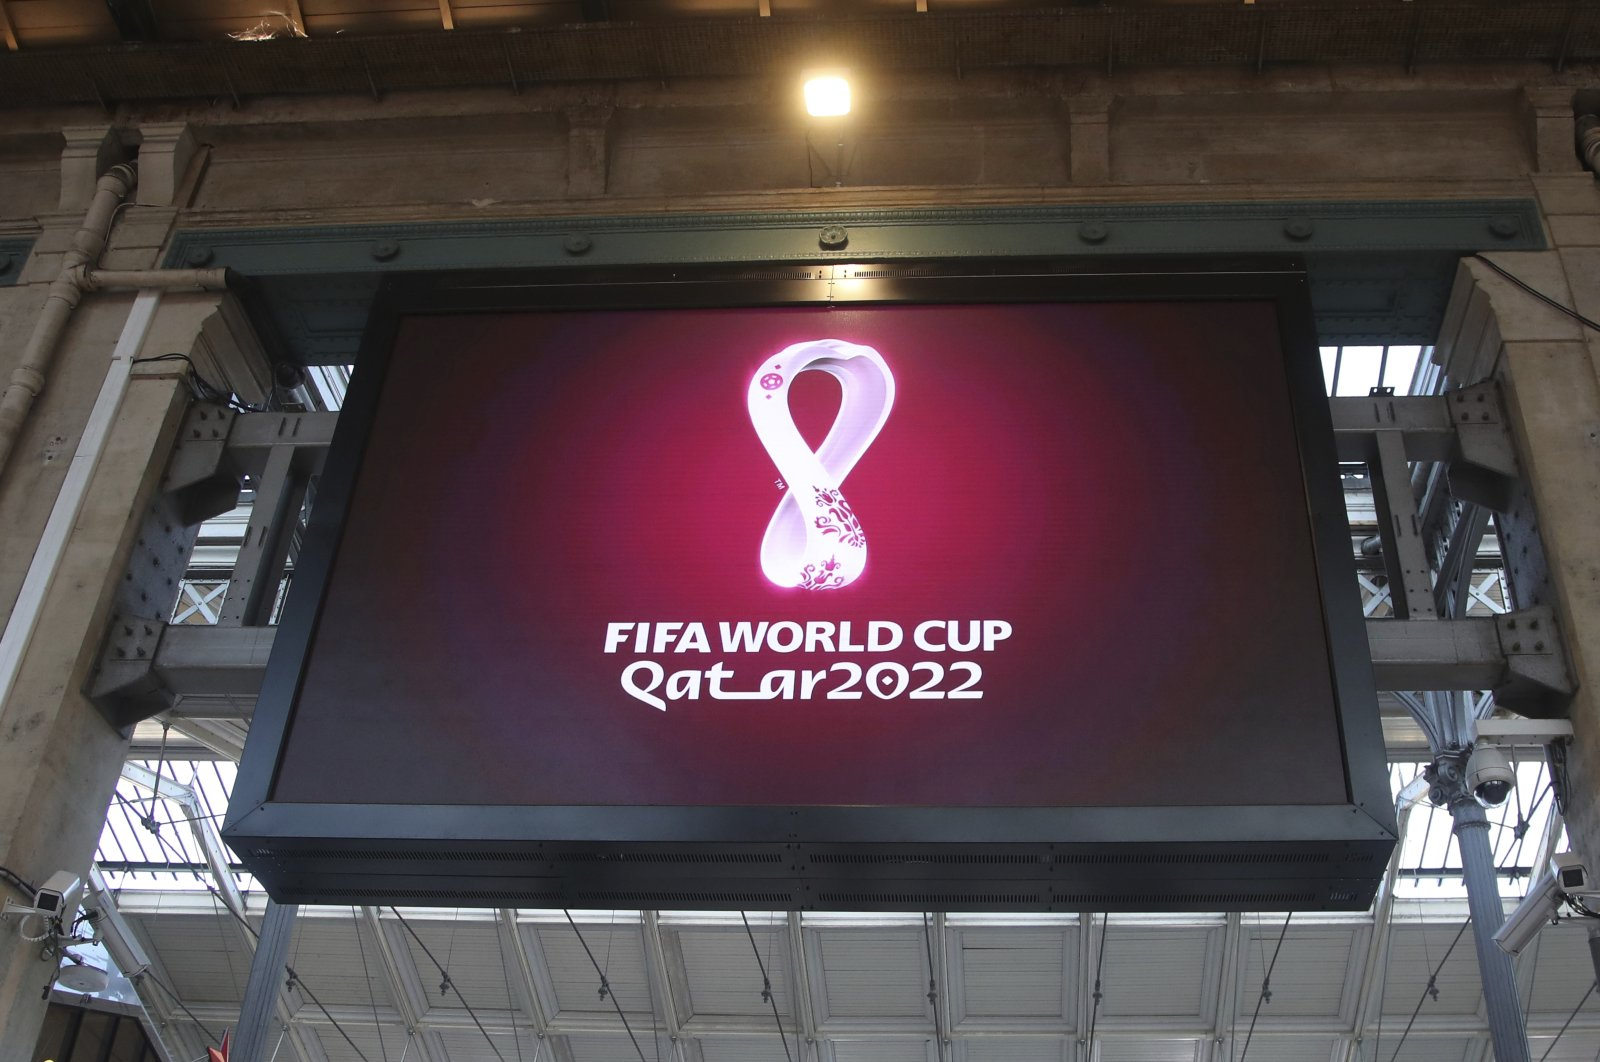 The Qatar 2022 World Cup logo is displayed on a giant screen at the Gare du Nord train station, in Paris, France, Sept. 3, 2019. (AP Photo)